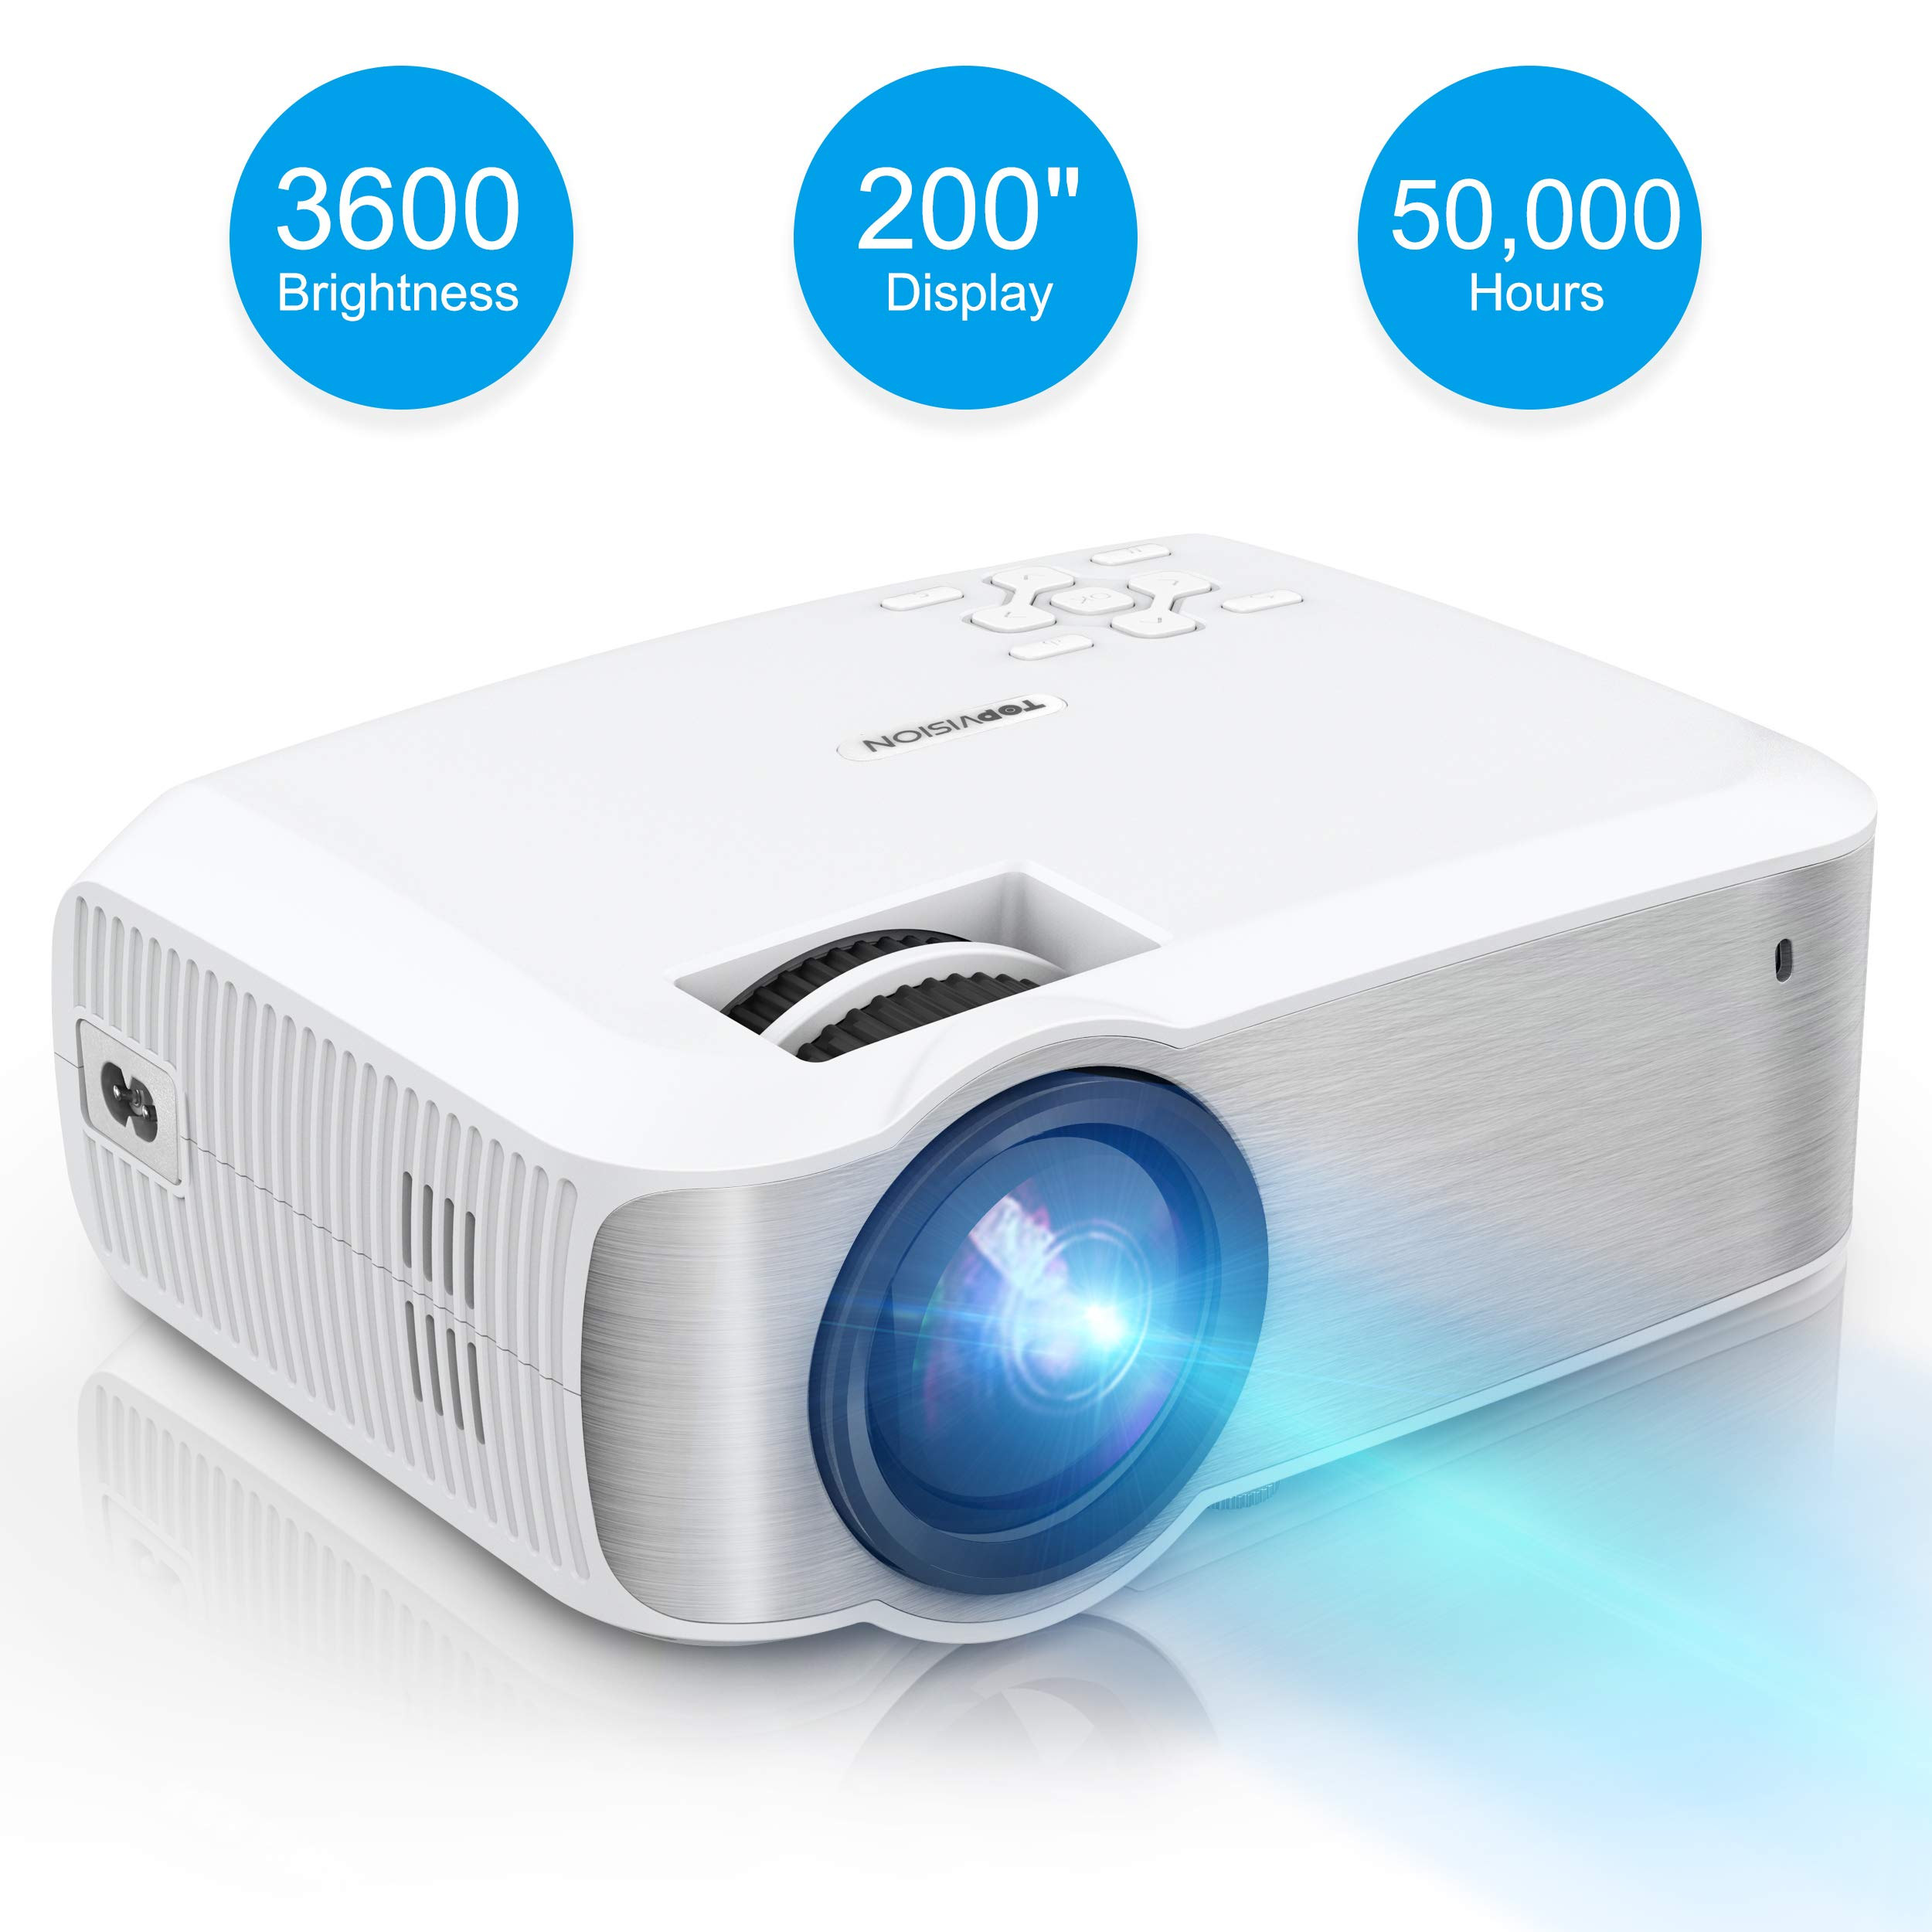 Video Projector, TOPVISION Native 720P Full HD LED Projector 2019 Upgraded, 50,000 Hrs Home Movie Projector for Indoor/Outdoor, Compatible with Fire TV Stick, PS4, HDMI, VGA, AV, USB